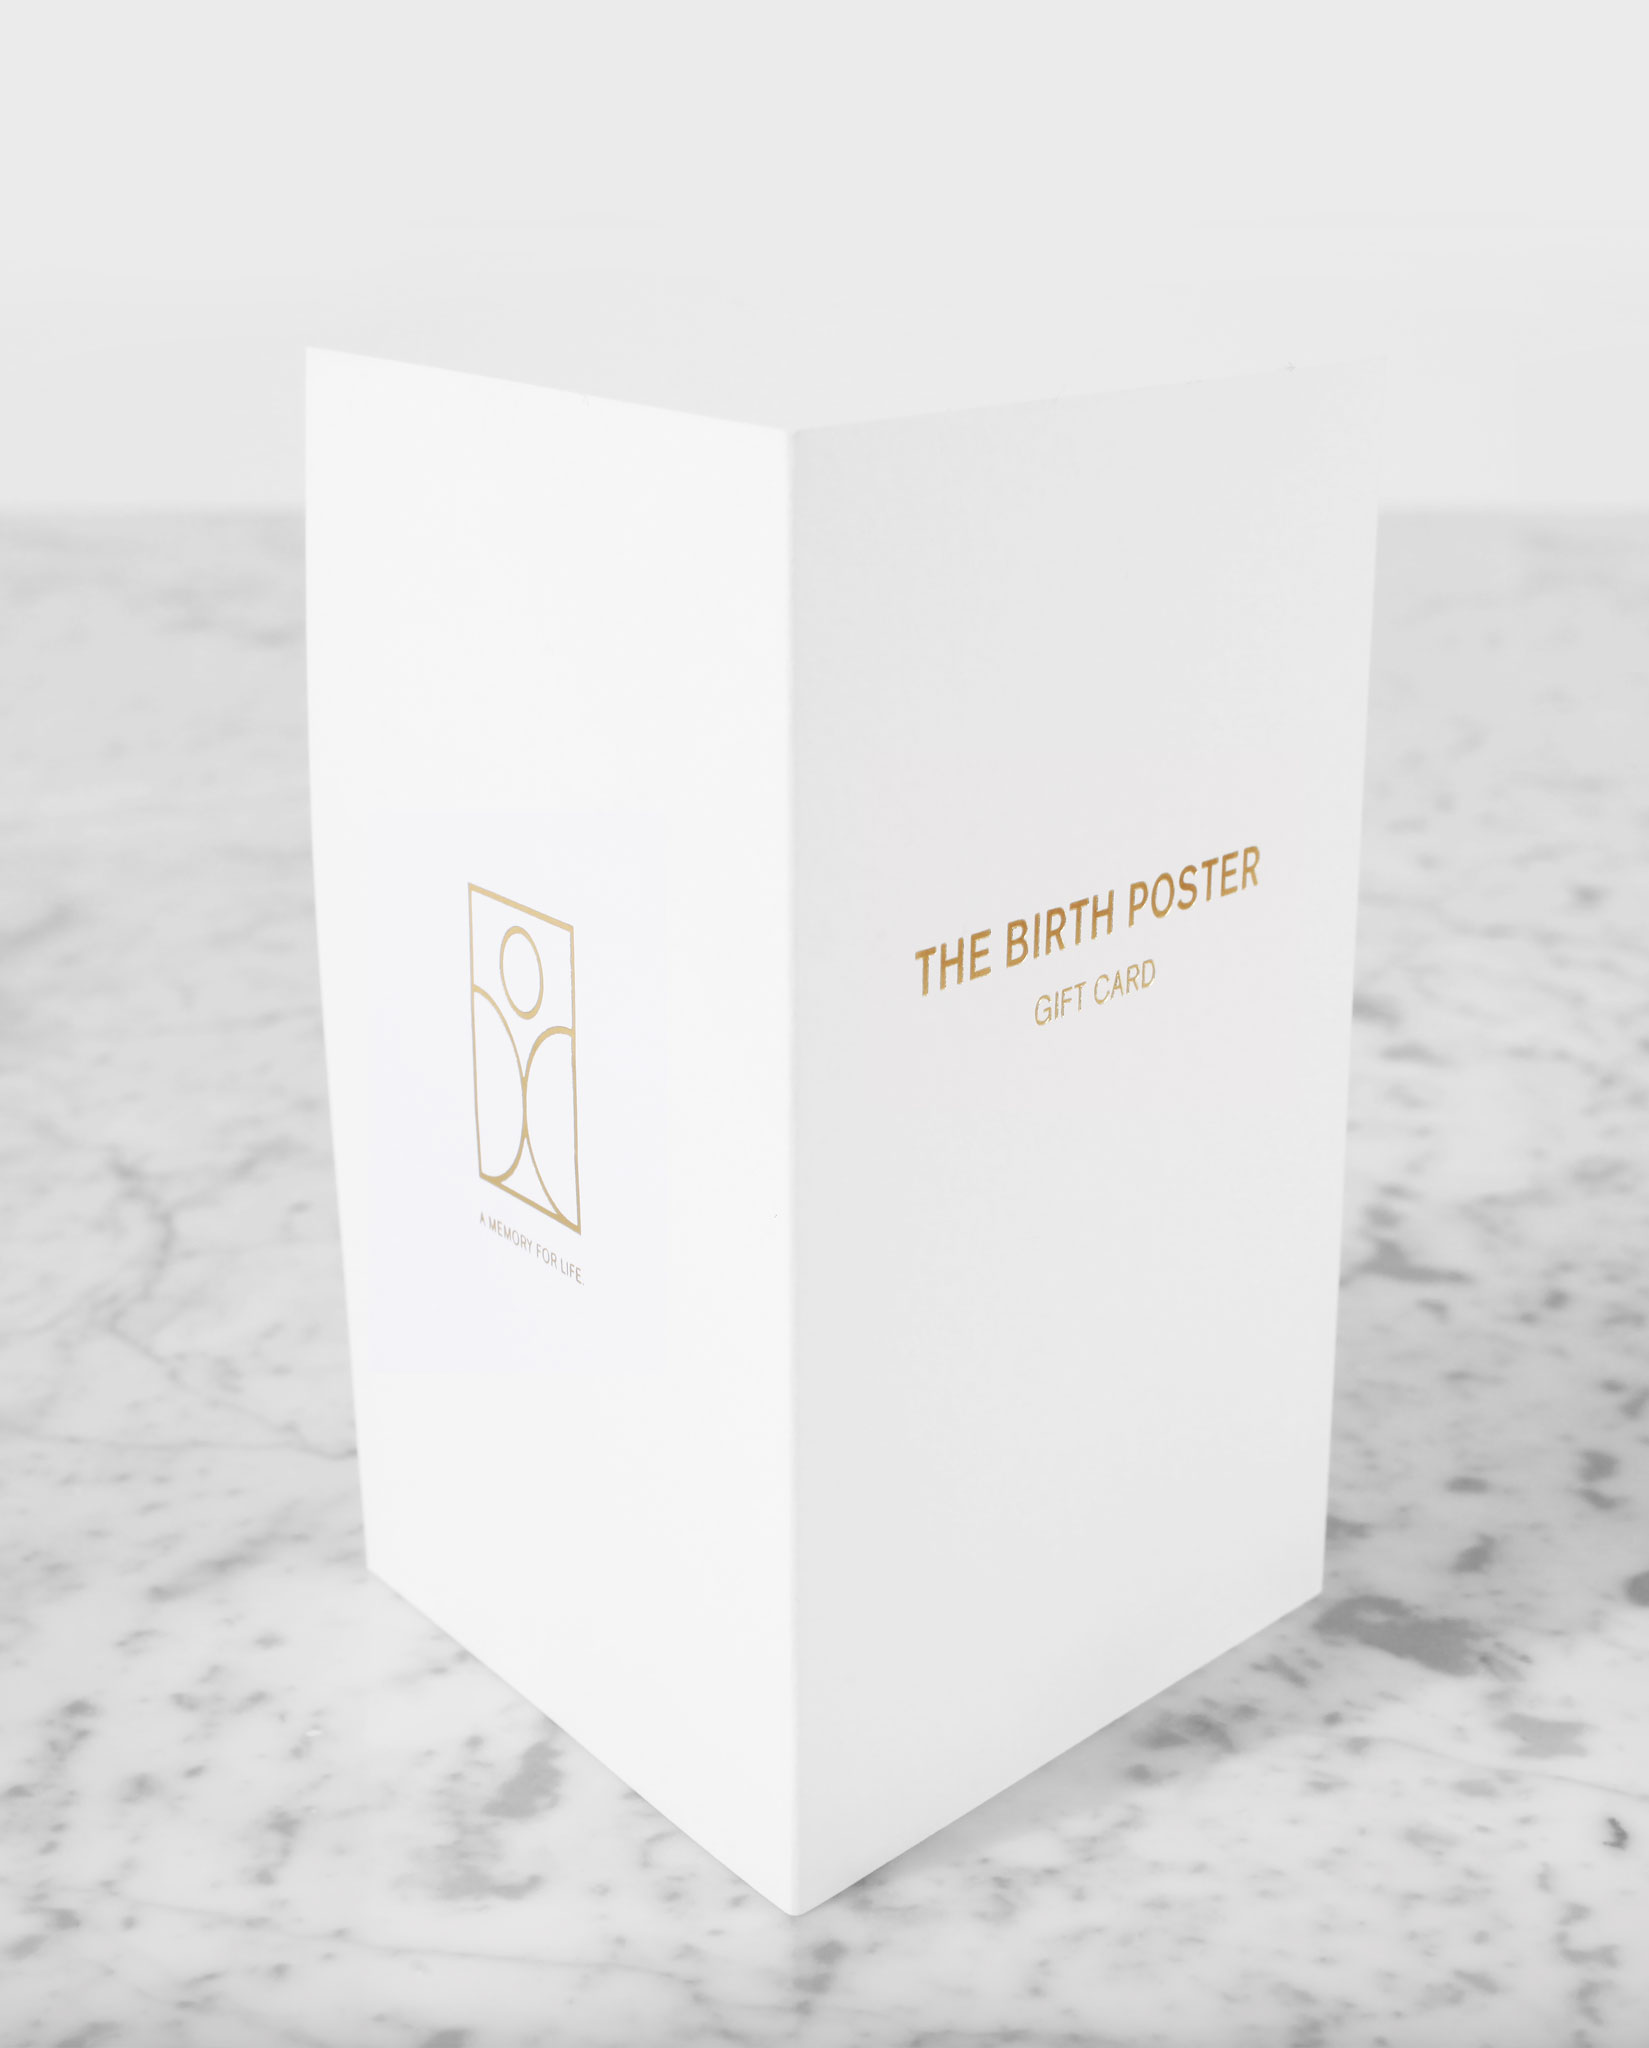 The Birth Poster - Gift card